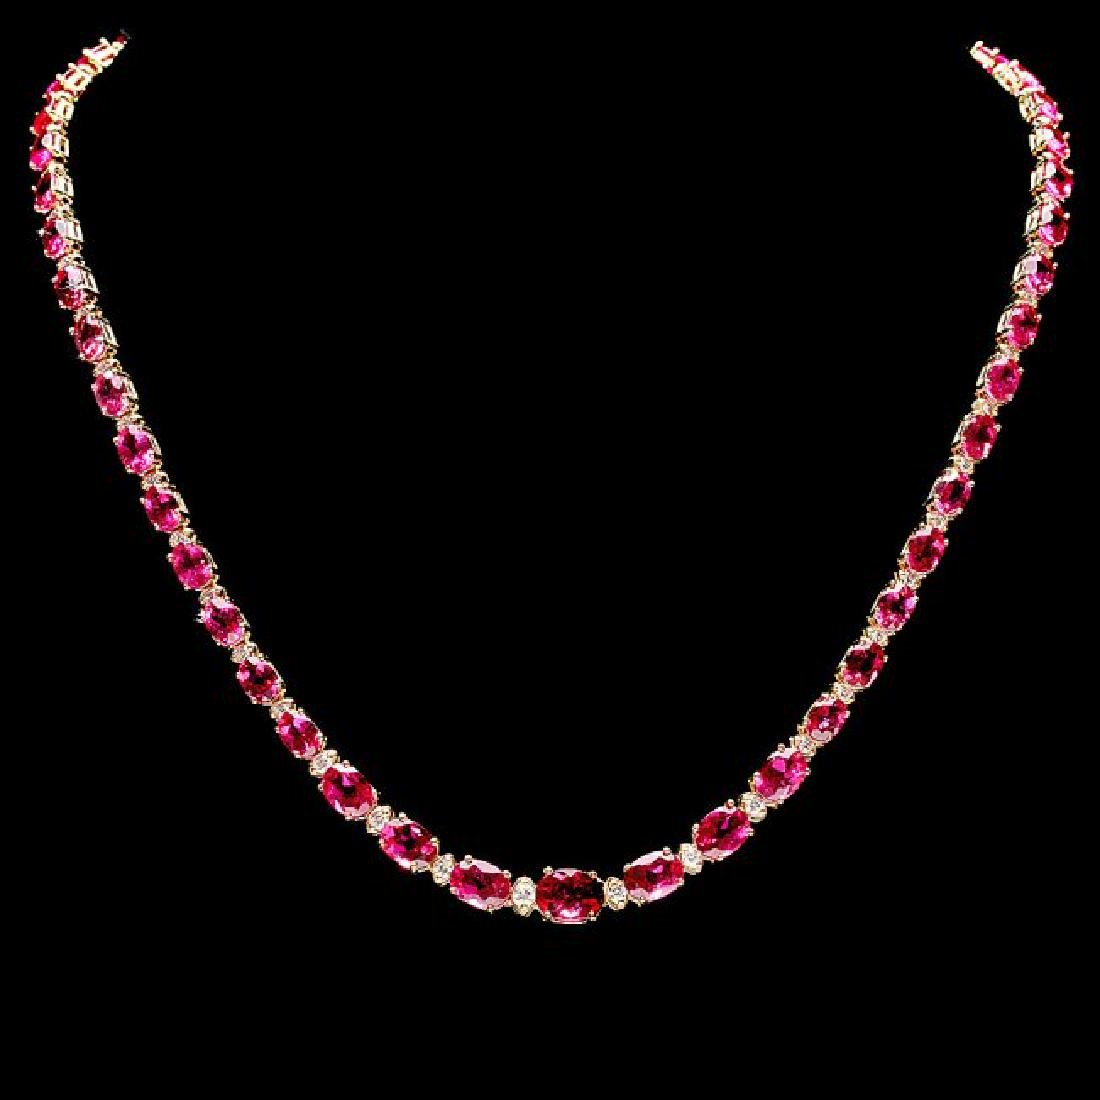 14k Gold 26ct Tourmaline 1.40ct Diamond Necklace